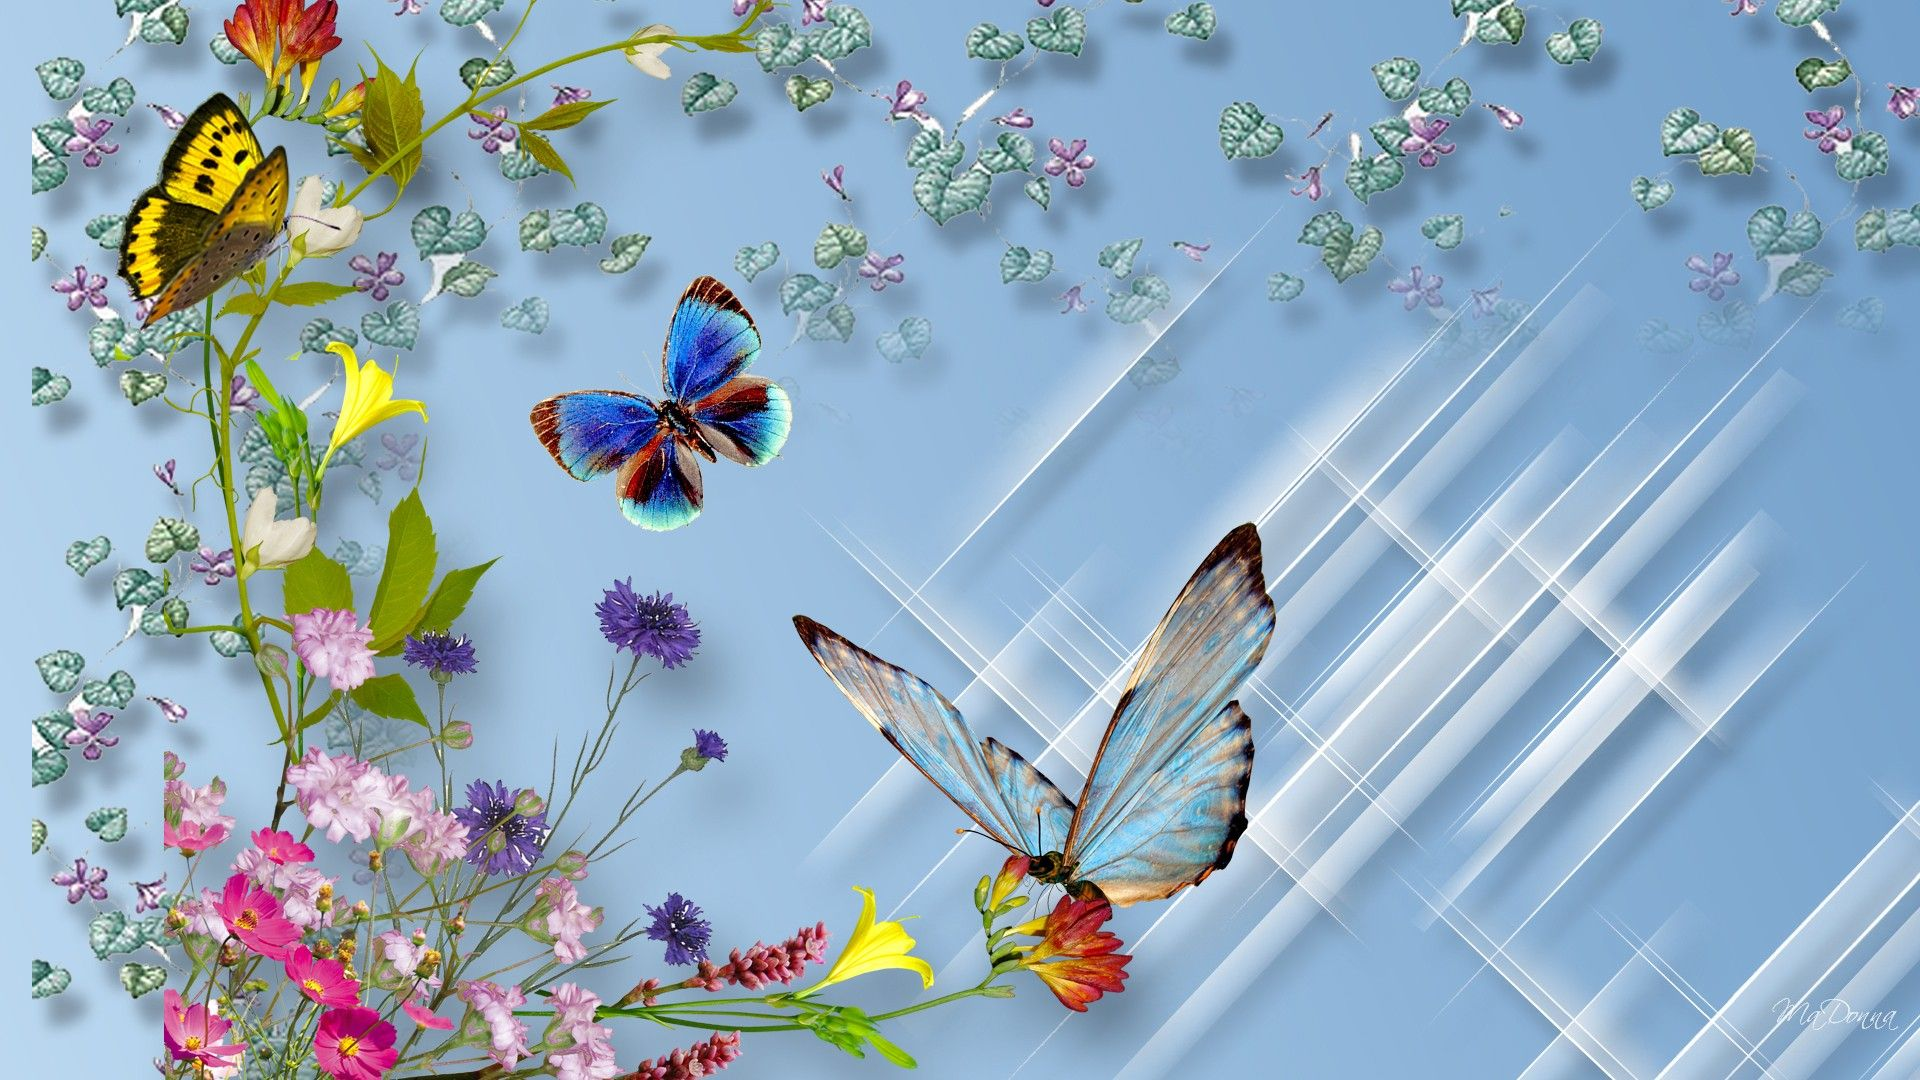 download flower and butterfly high definition wallpaper snj4e